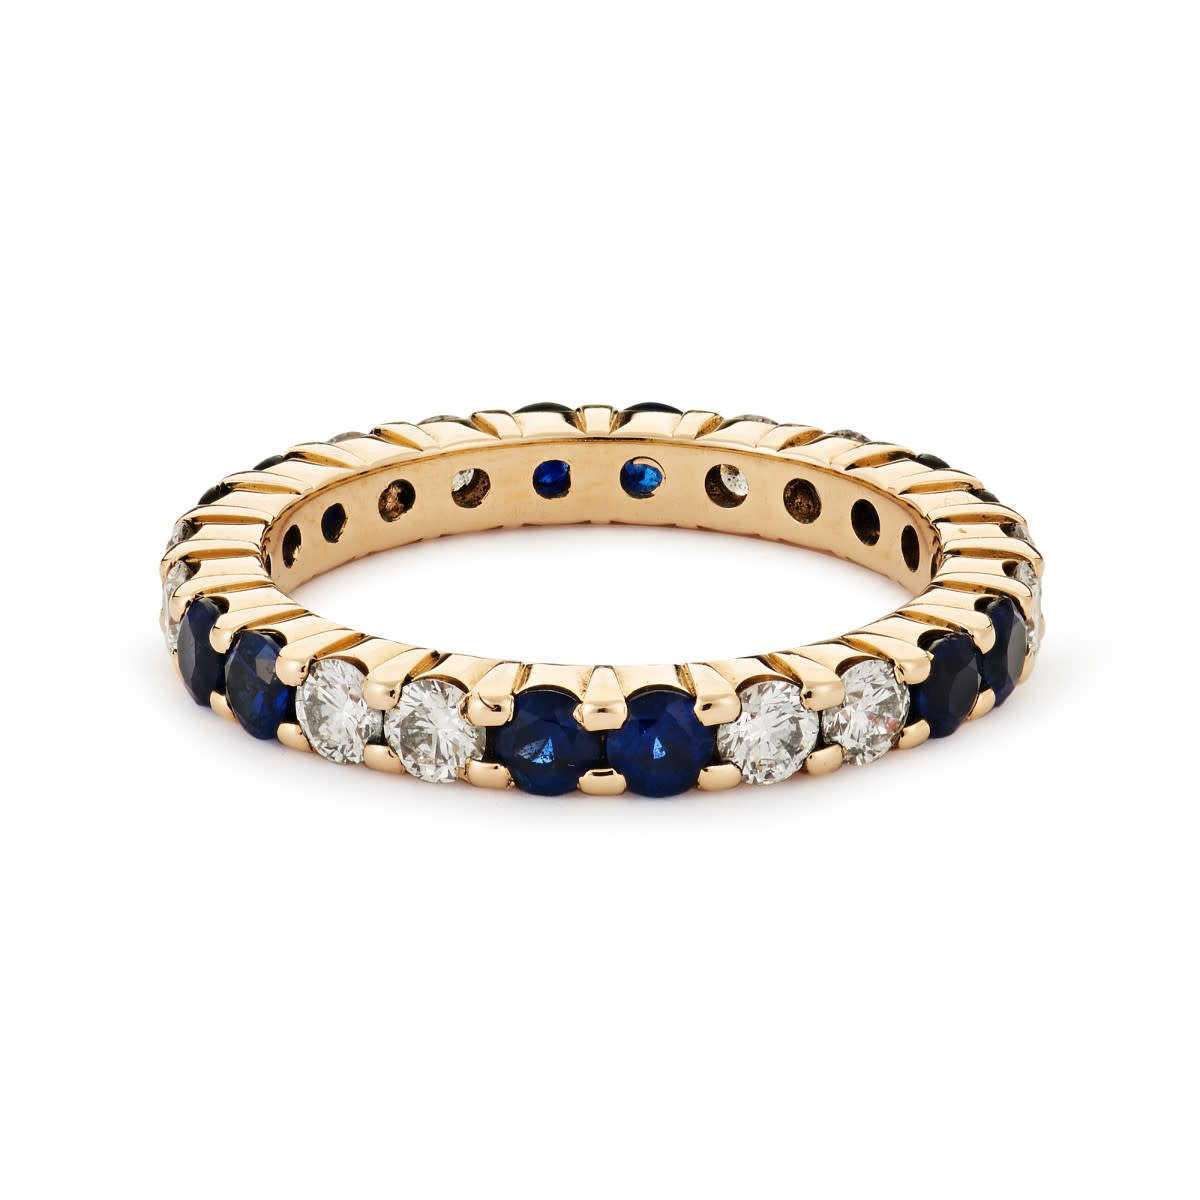 Eternity Band Shared Prong 2.5mm Alternating Two Diamond Two Sapphire